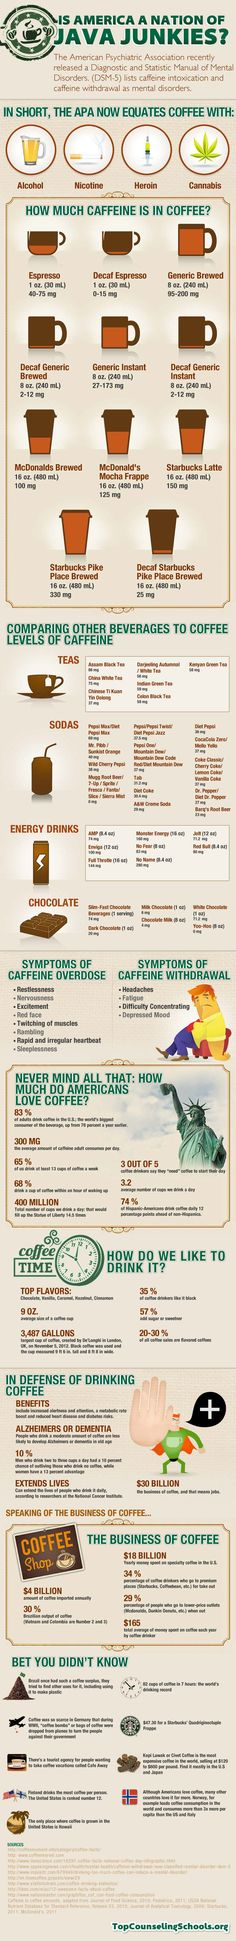 #INFOgraphic > Caffeine Addiction USA:   > http://infographicsmania.com/caffeine-addiction-usa/?utm_source=Pinterest&utm_medium=INFOGRAPHICSMANIA&utm_campaign=SNAP